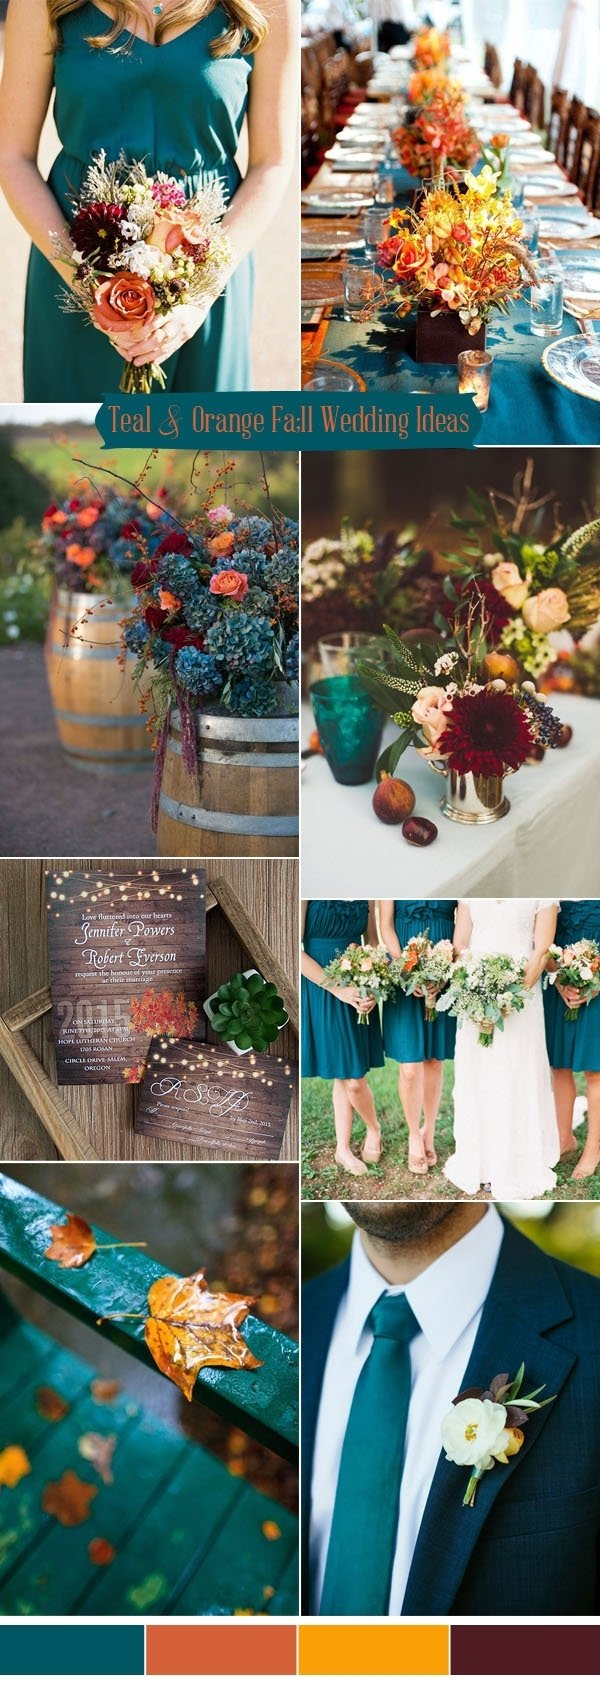 10 Gorgeous Blue And Orange Wedding Ideas ten prettiest shades of blue for 2017 wedding color ideas 2021